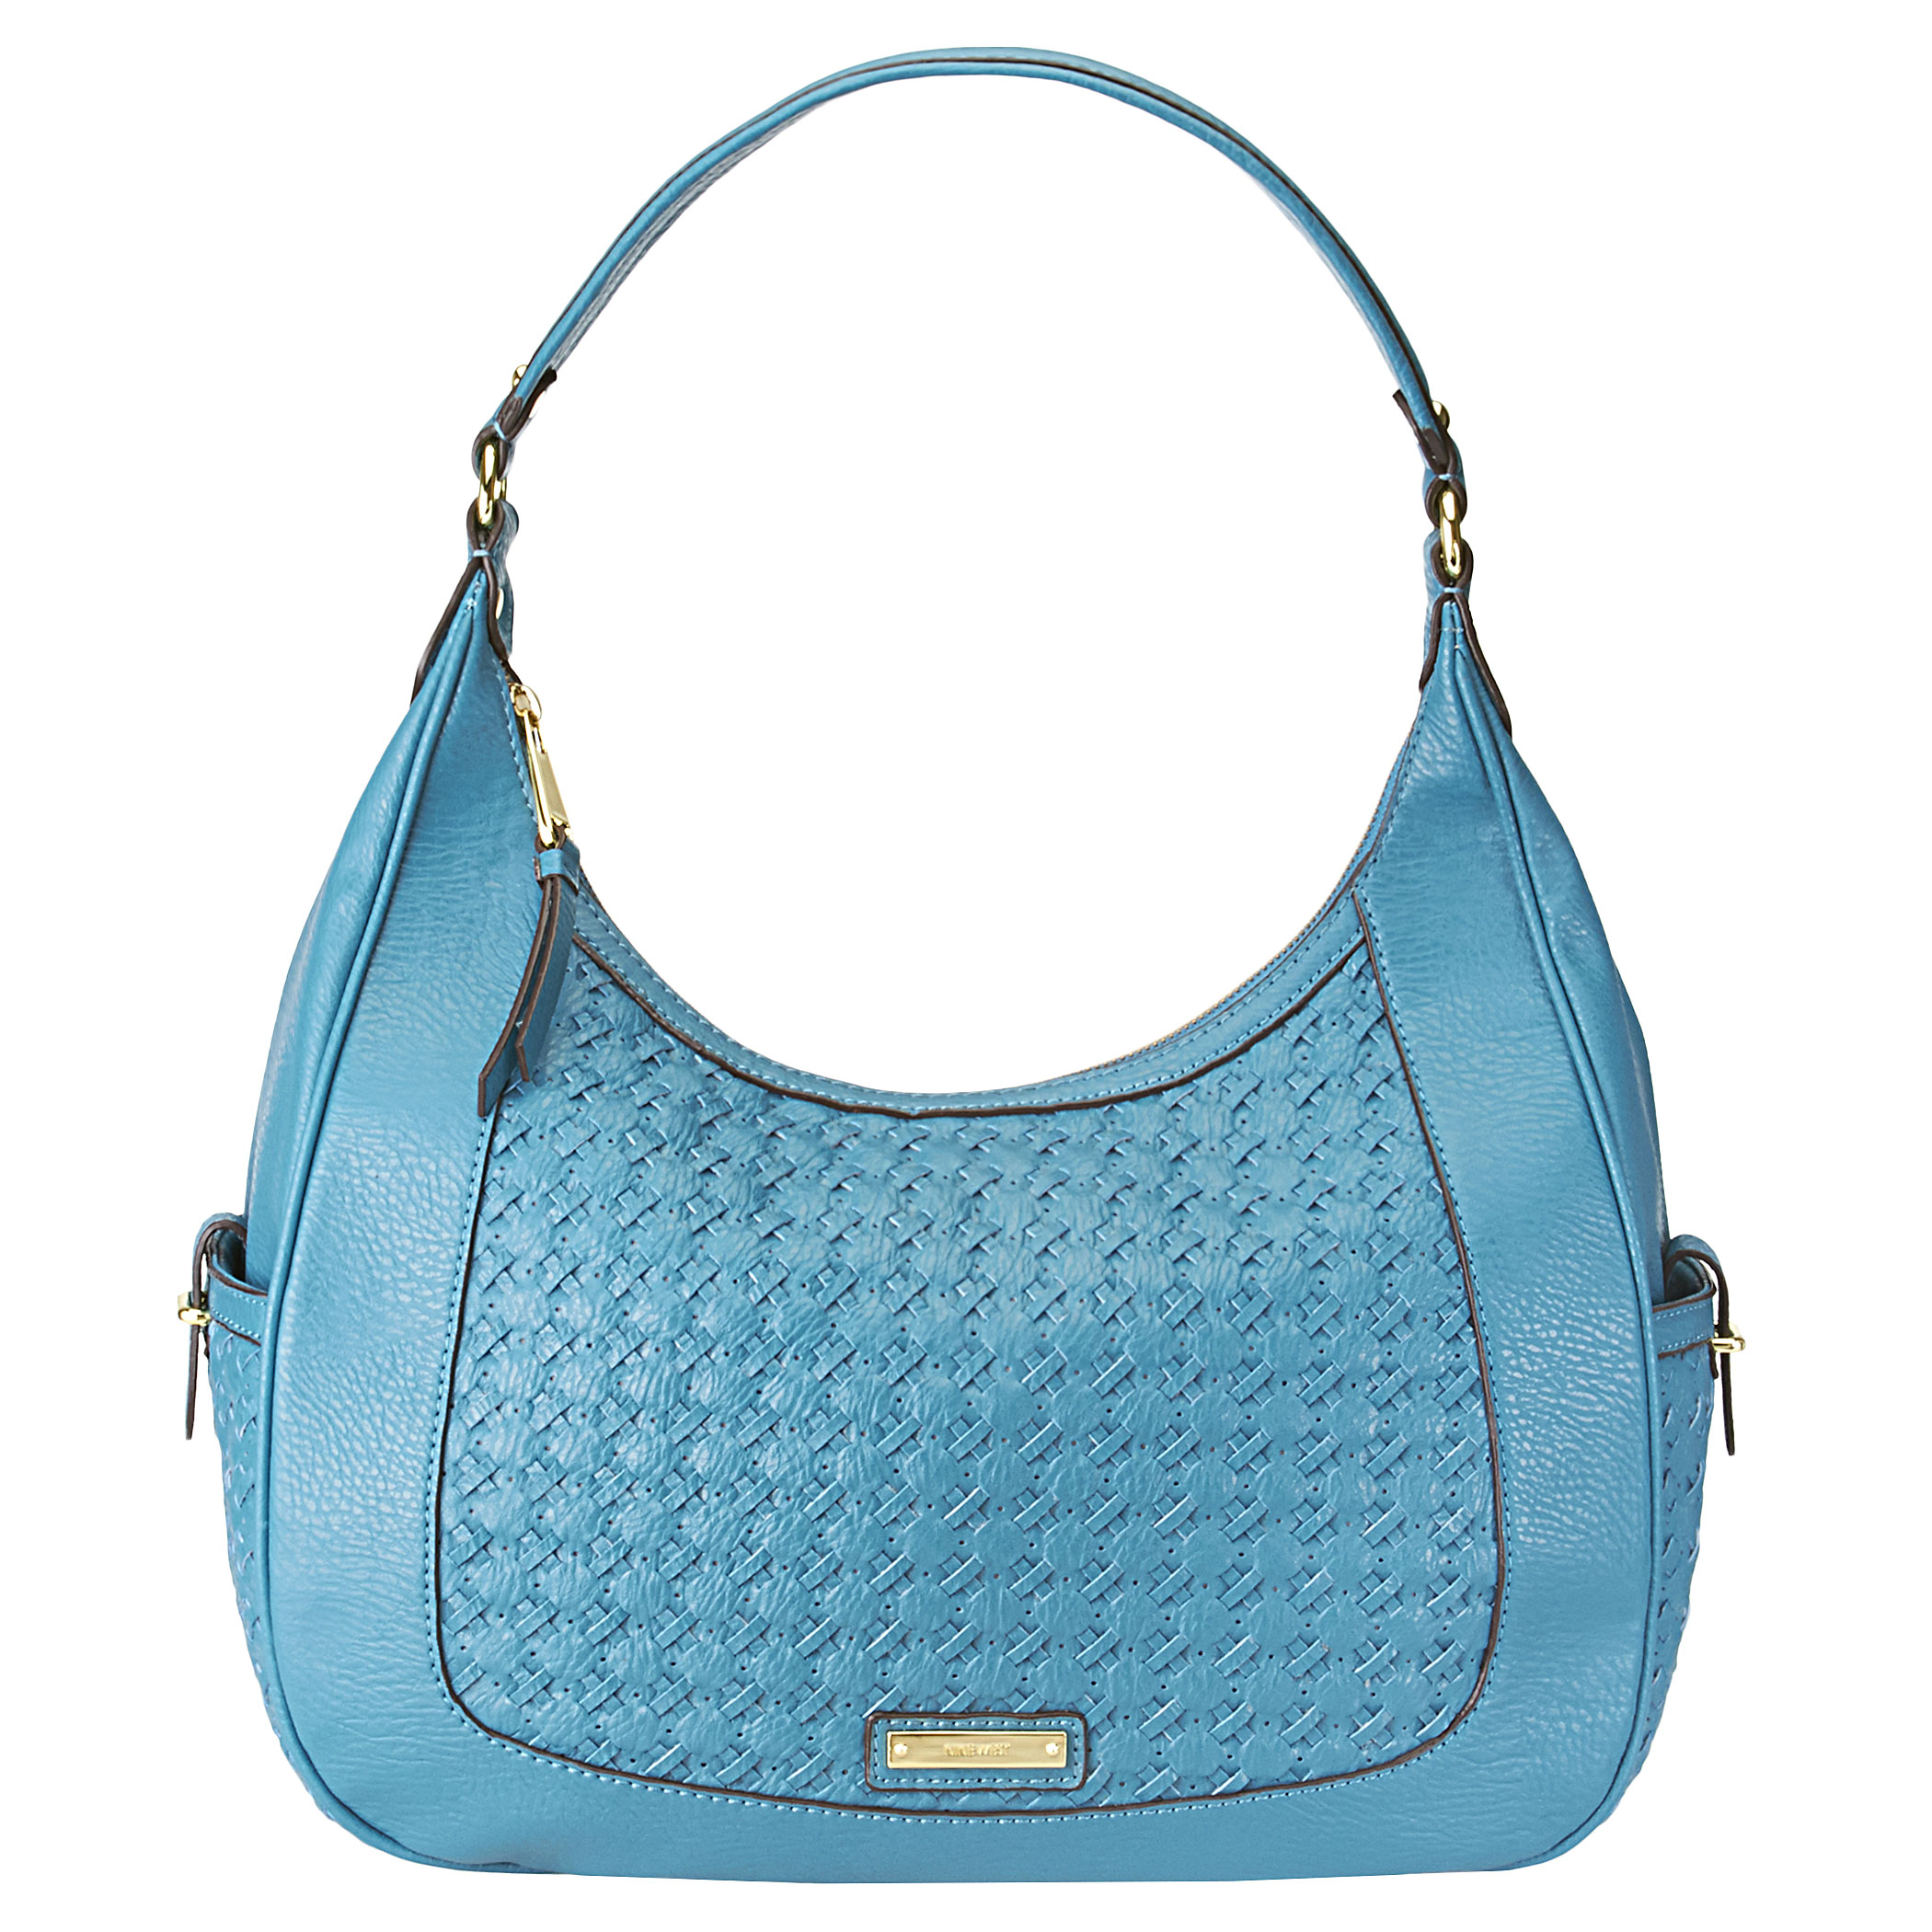 Nine West: Spice Market Woven Hobo Bag